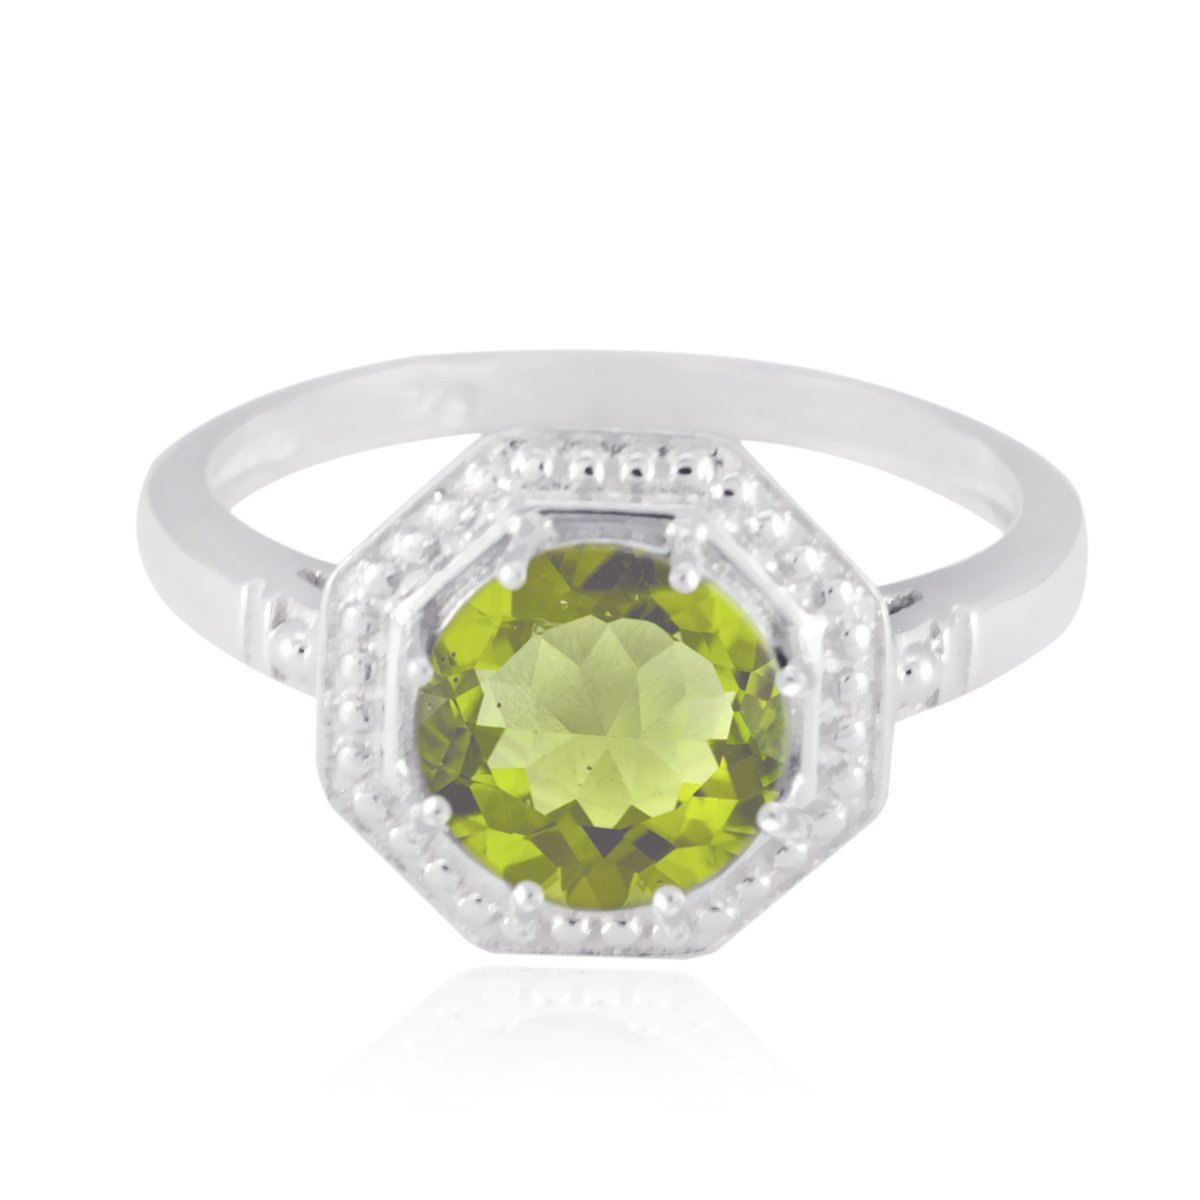 Good Gemstones Round Faceted Peridots Ring - Solid Silber Green Peridots Good Gemstones Ring - Handmade Jewelry Great Selling Shops Gift for Black Friday Birthstone Ring -US 11.75